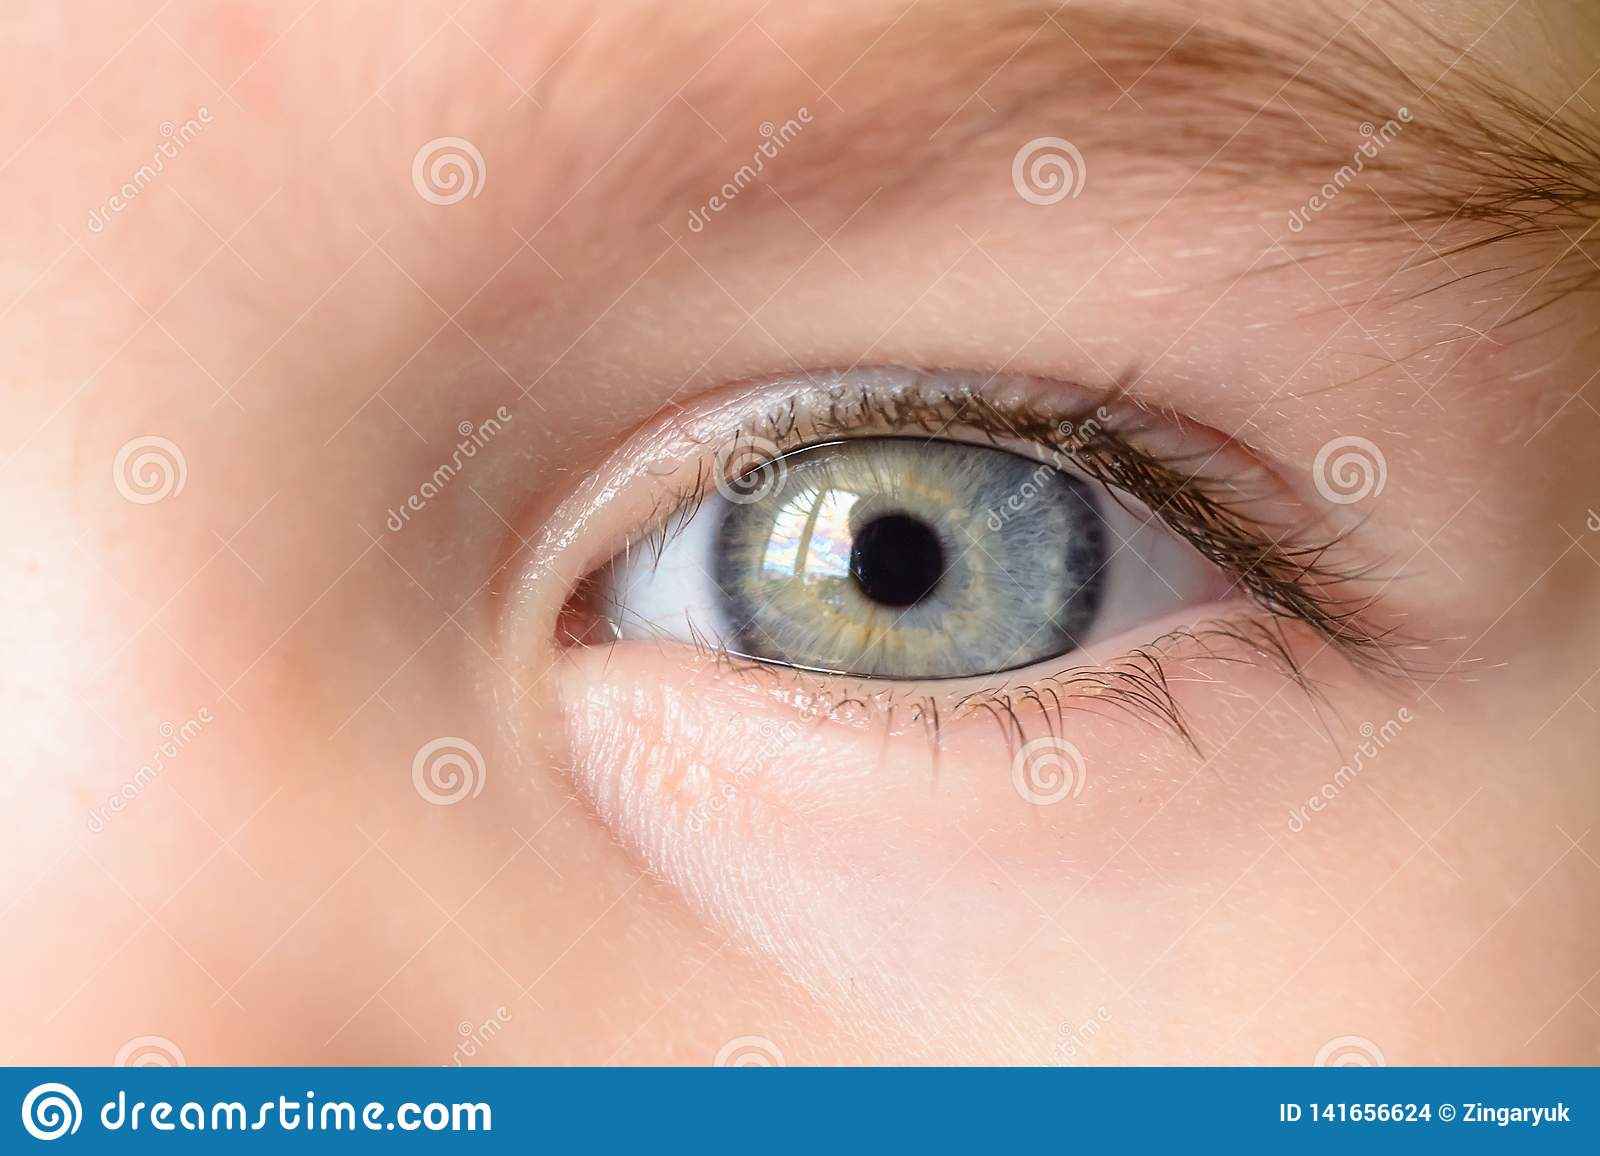 A photo of a gray eye and an eyebrow of a little girl close-up